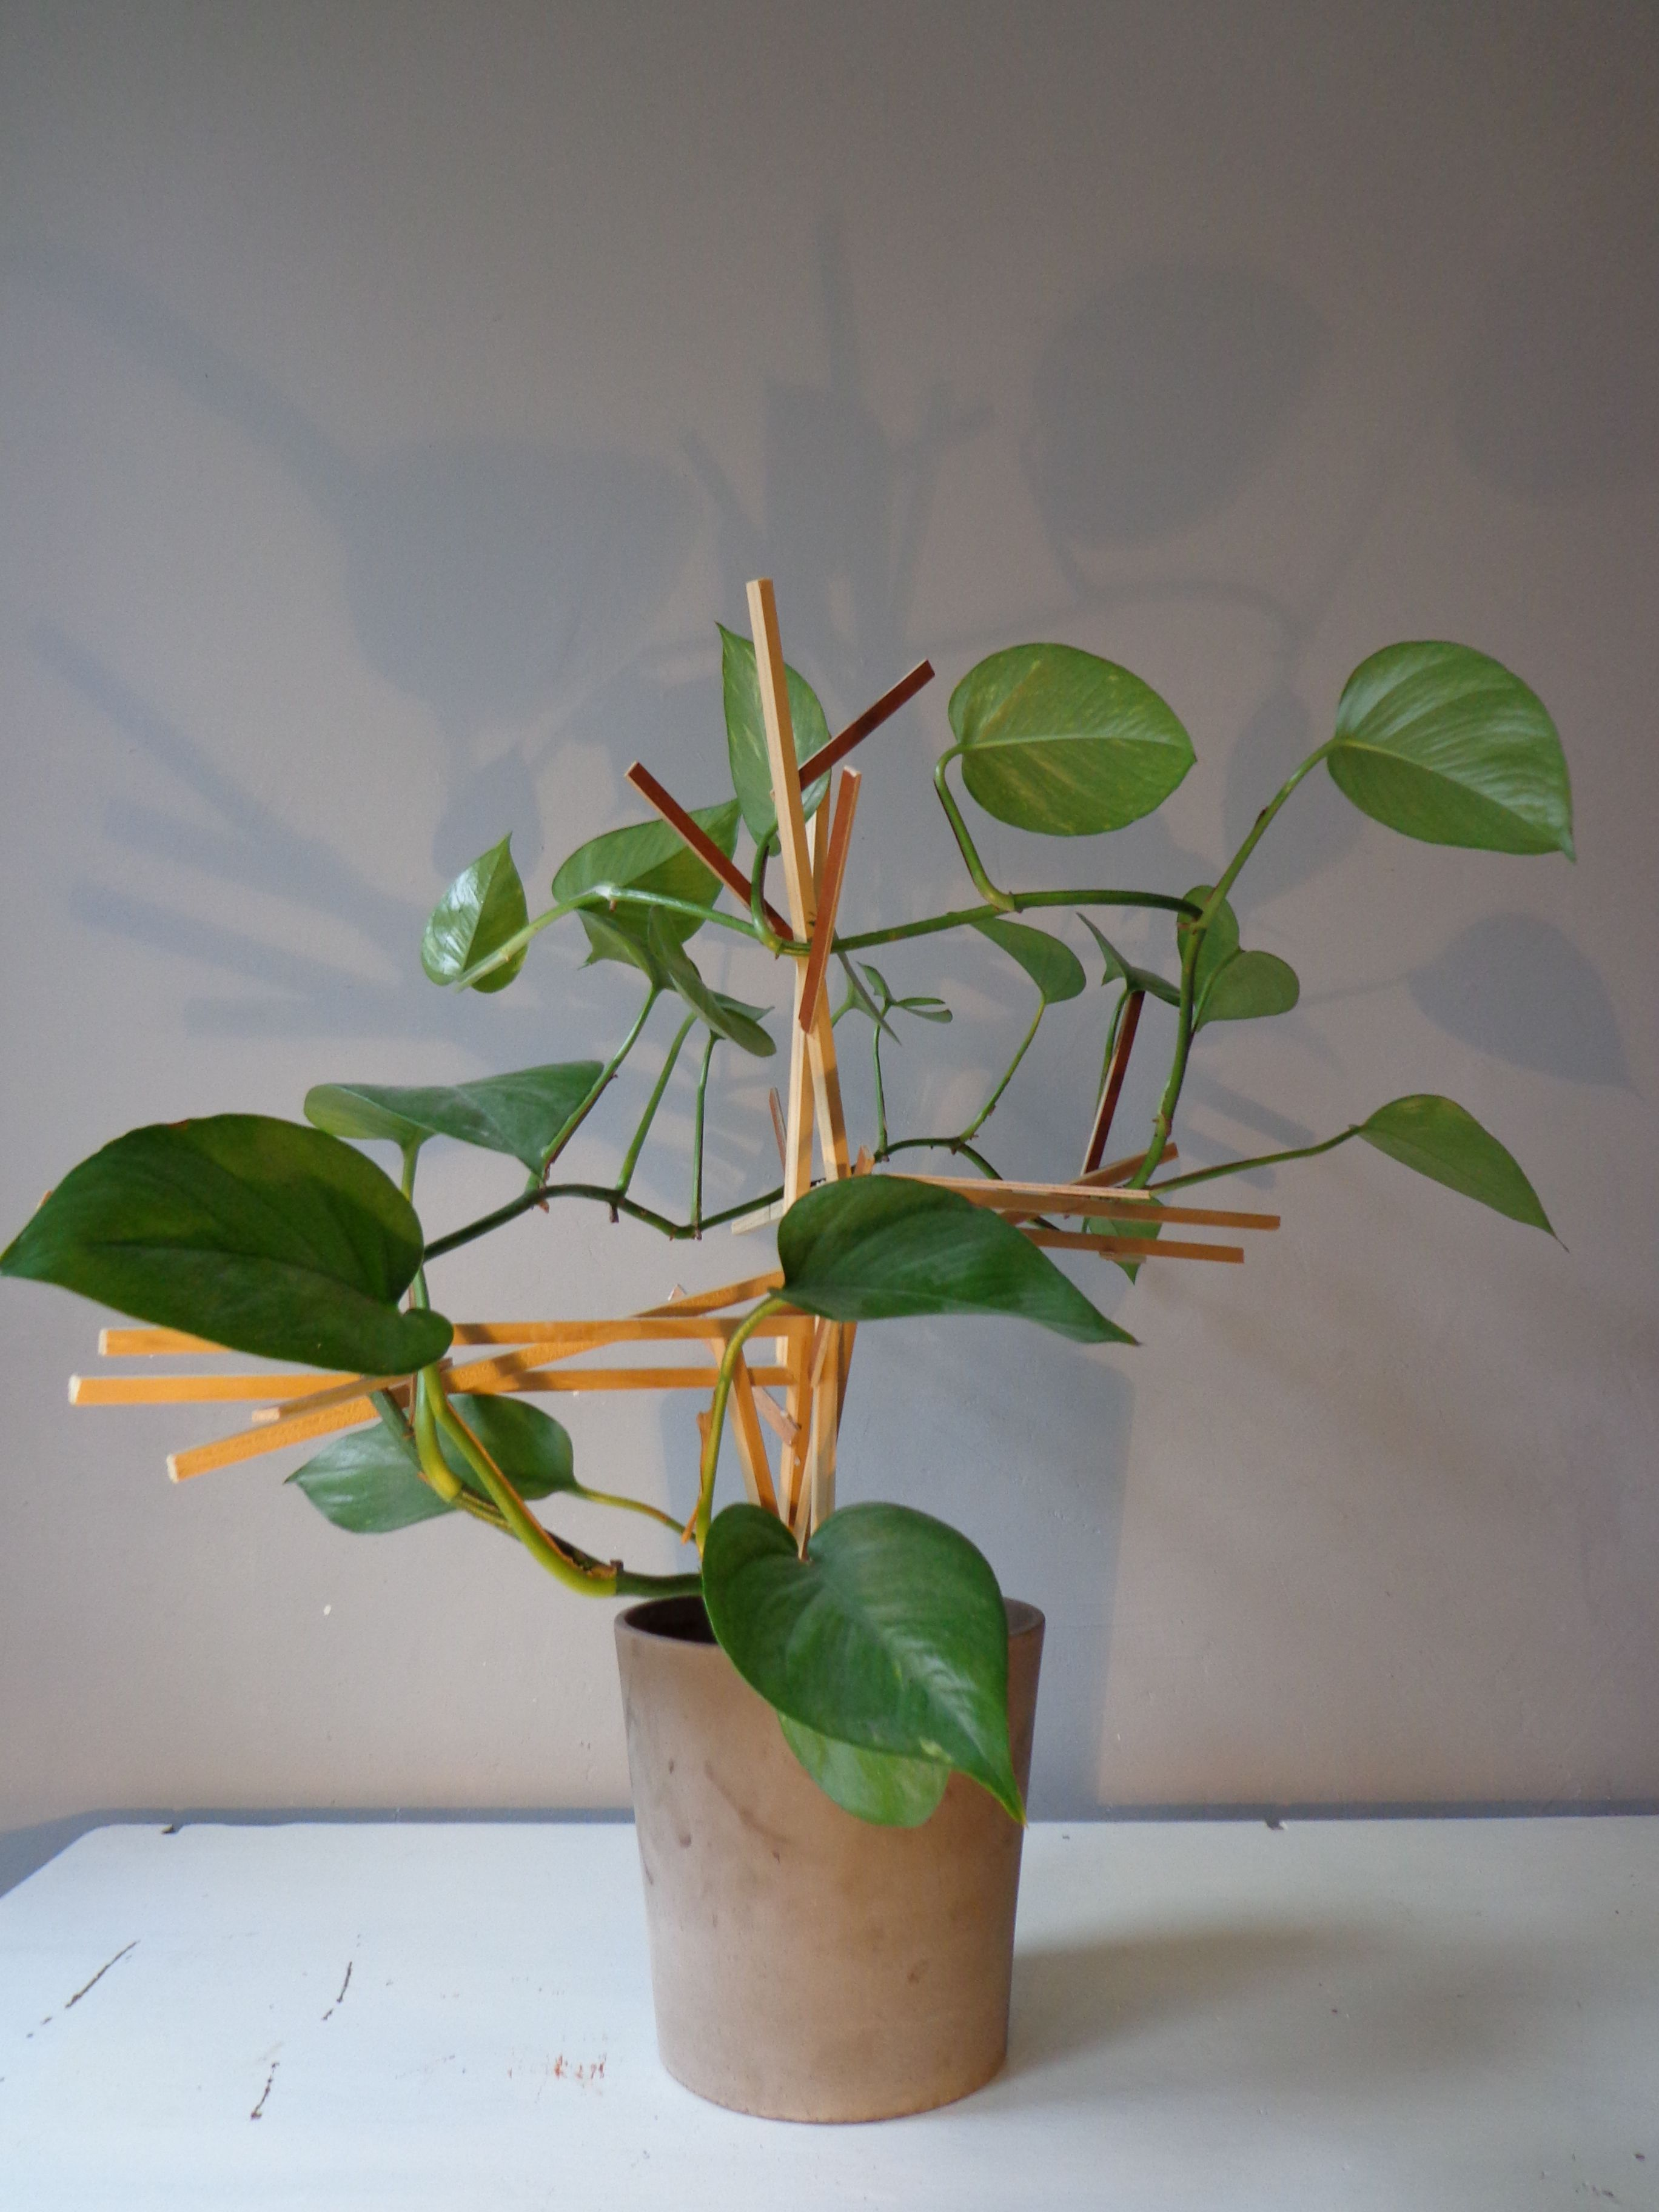 Powerplant, climbing structure creating a natural treelike plant indoors